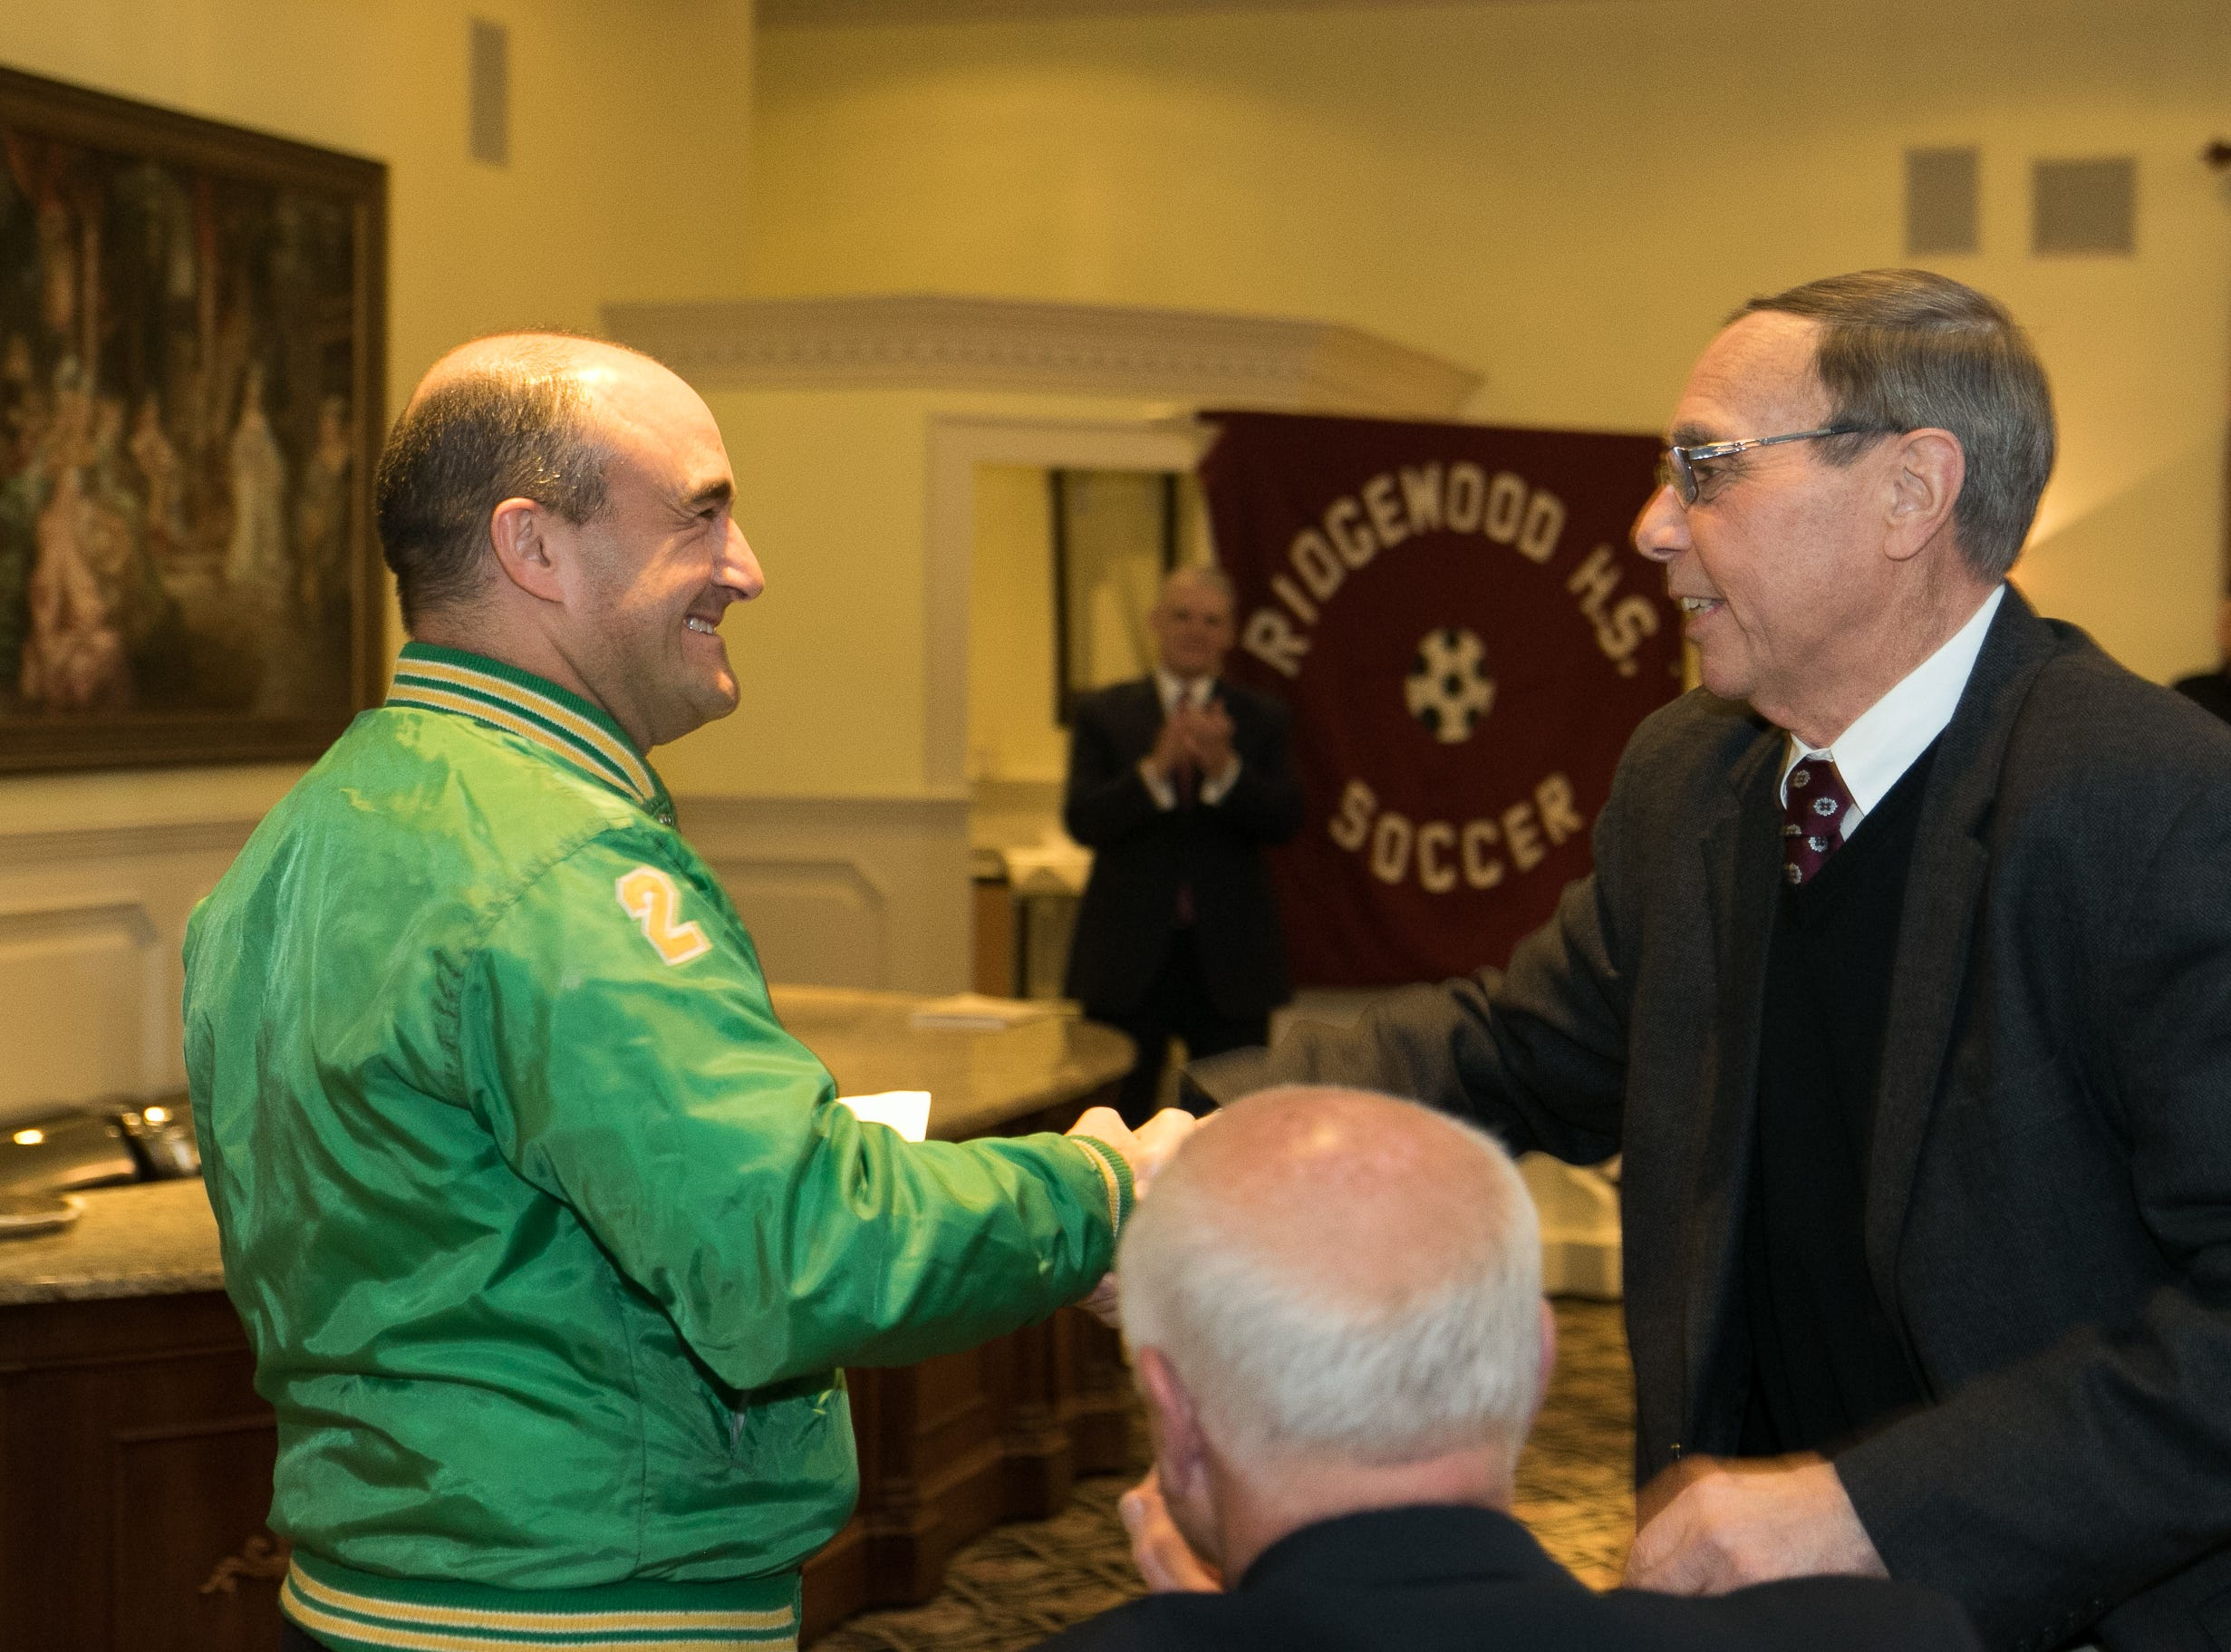 Dr. Paul Semendinger, Honored inductee Coach Jeff Yearing. Ridgewood High School held it's Hall of Fame Class of 2018 Induction Dinner, honoring long time coach Jeff Yearing at the Brickhouse in Wyckoff. 04/05/2019